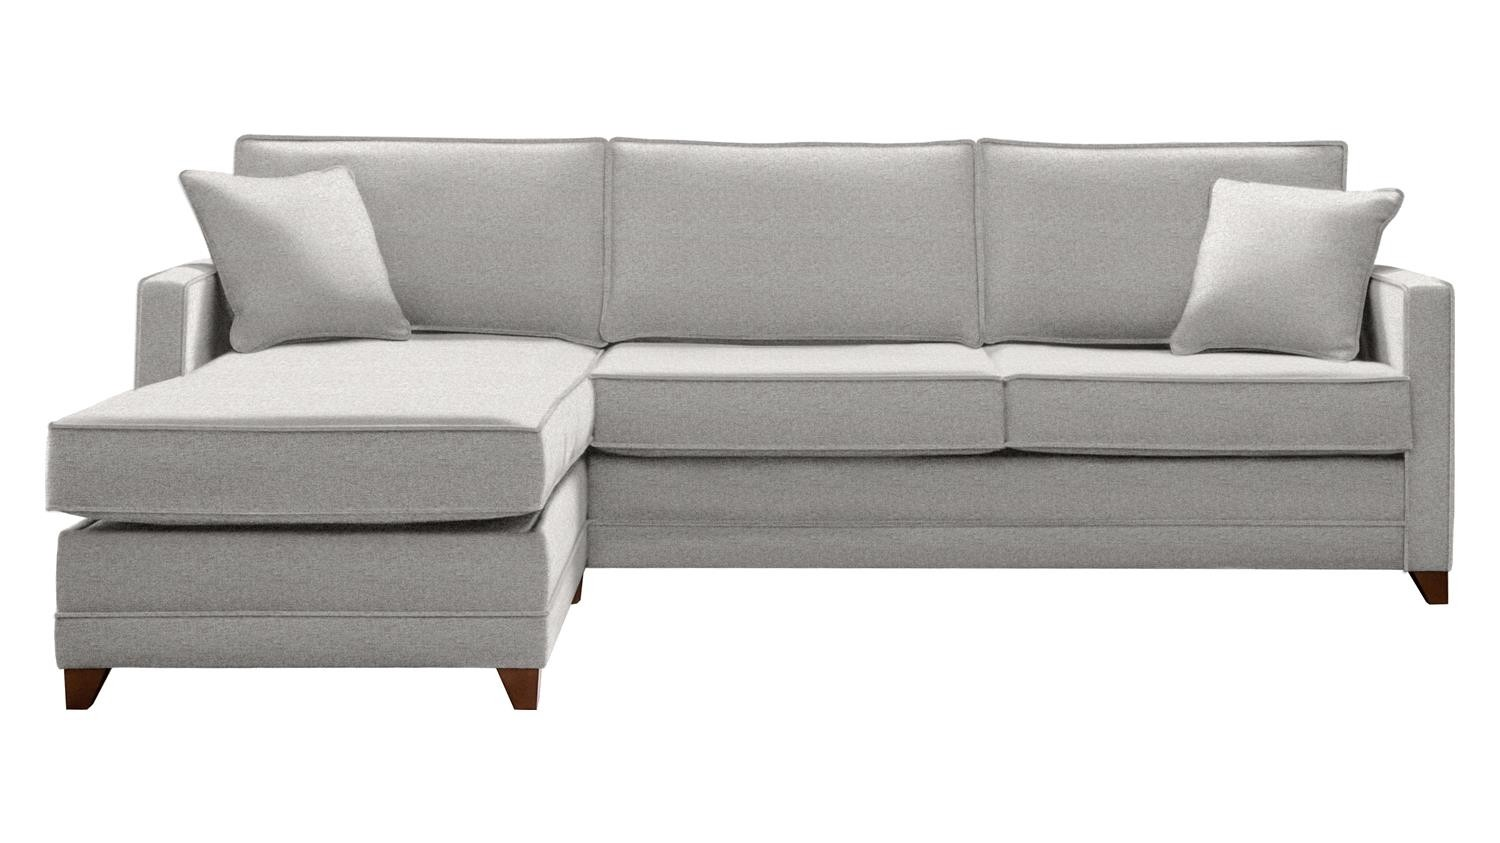 The Marston 5 Seater Left Chaise Storage Sofa Bed